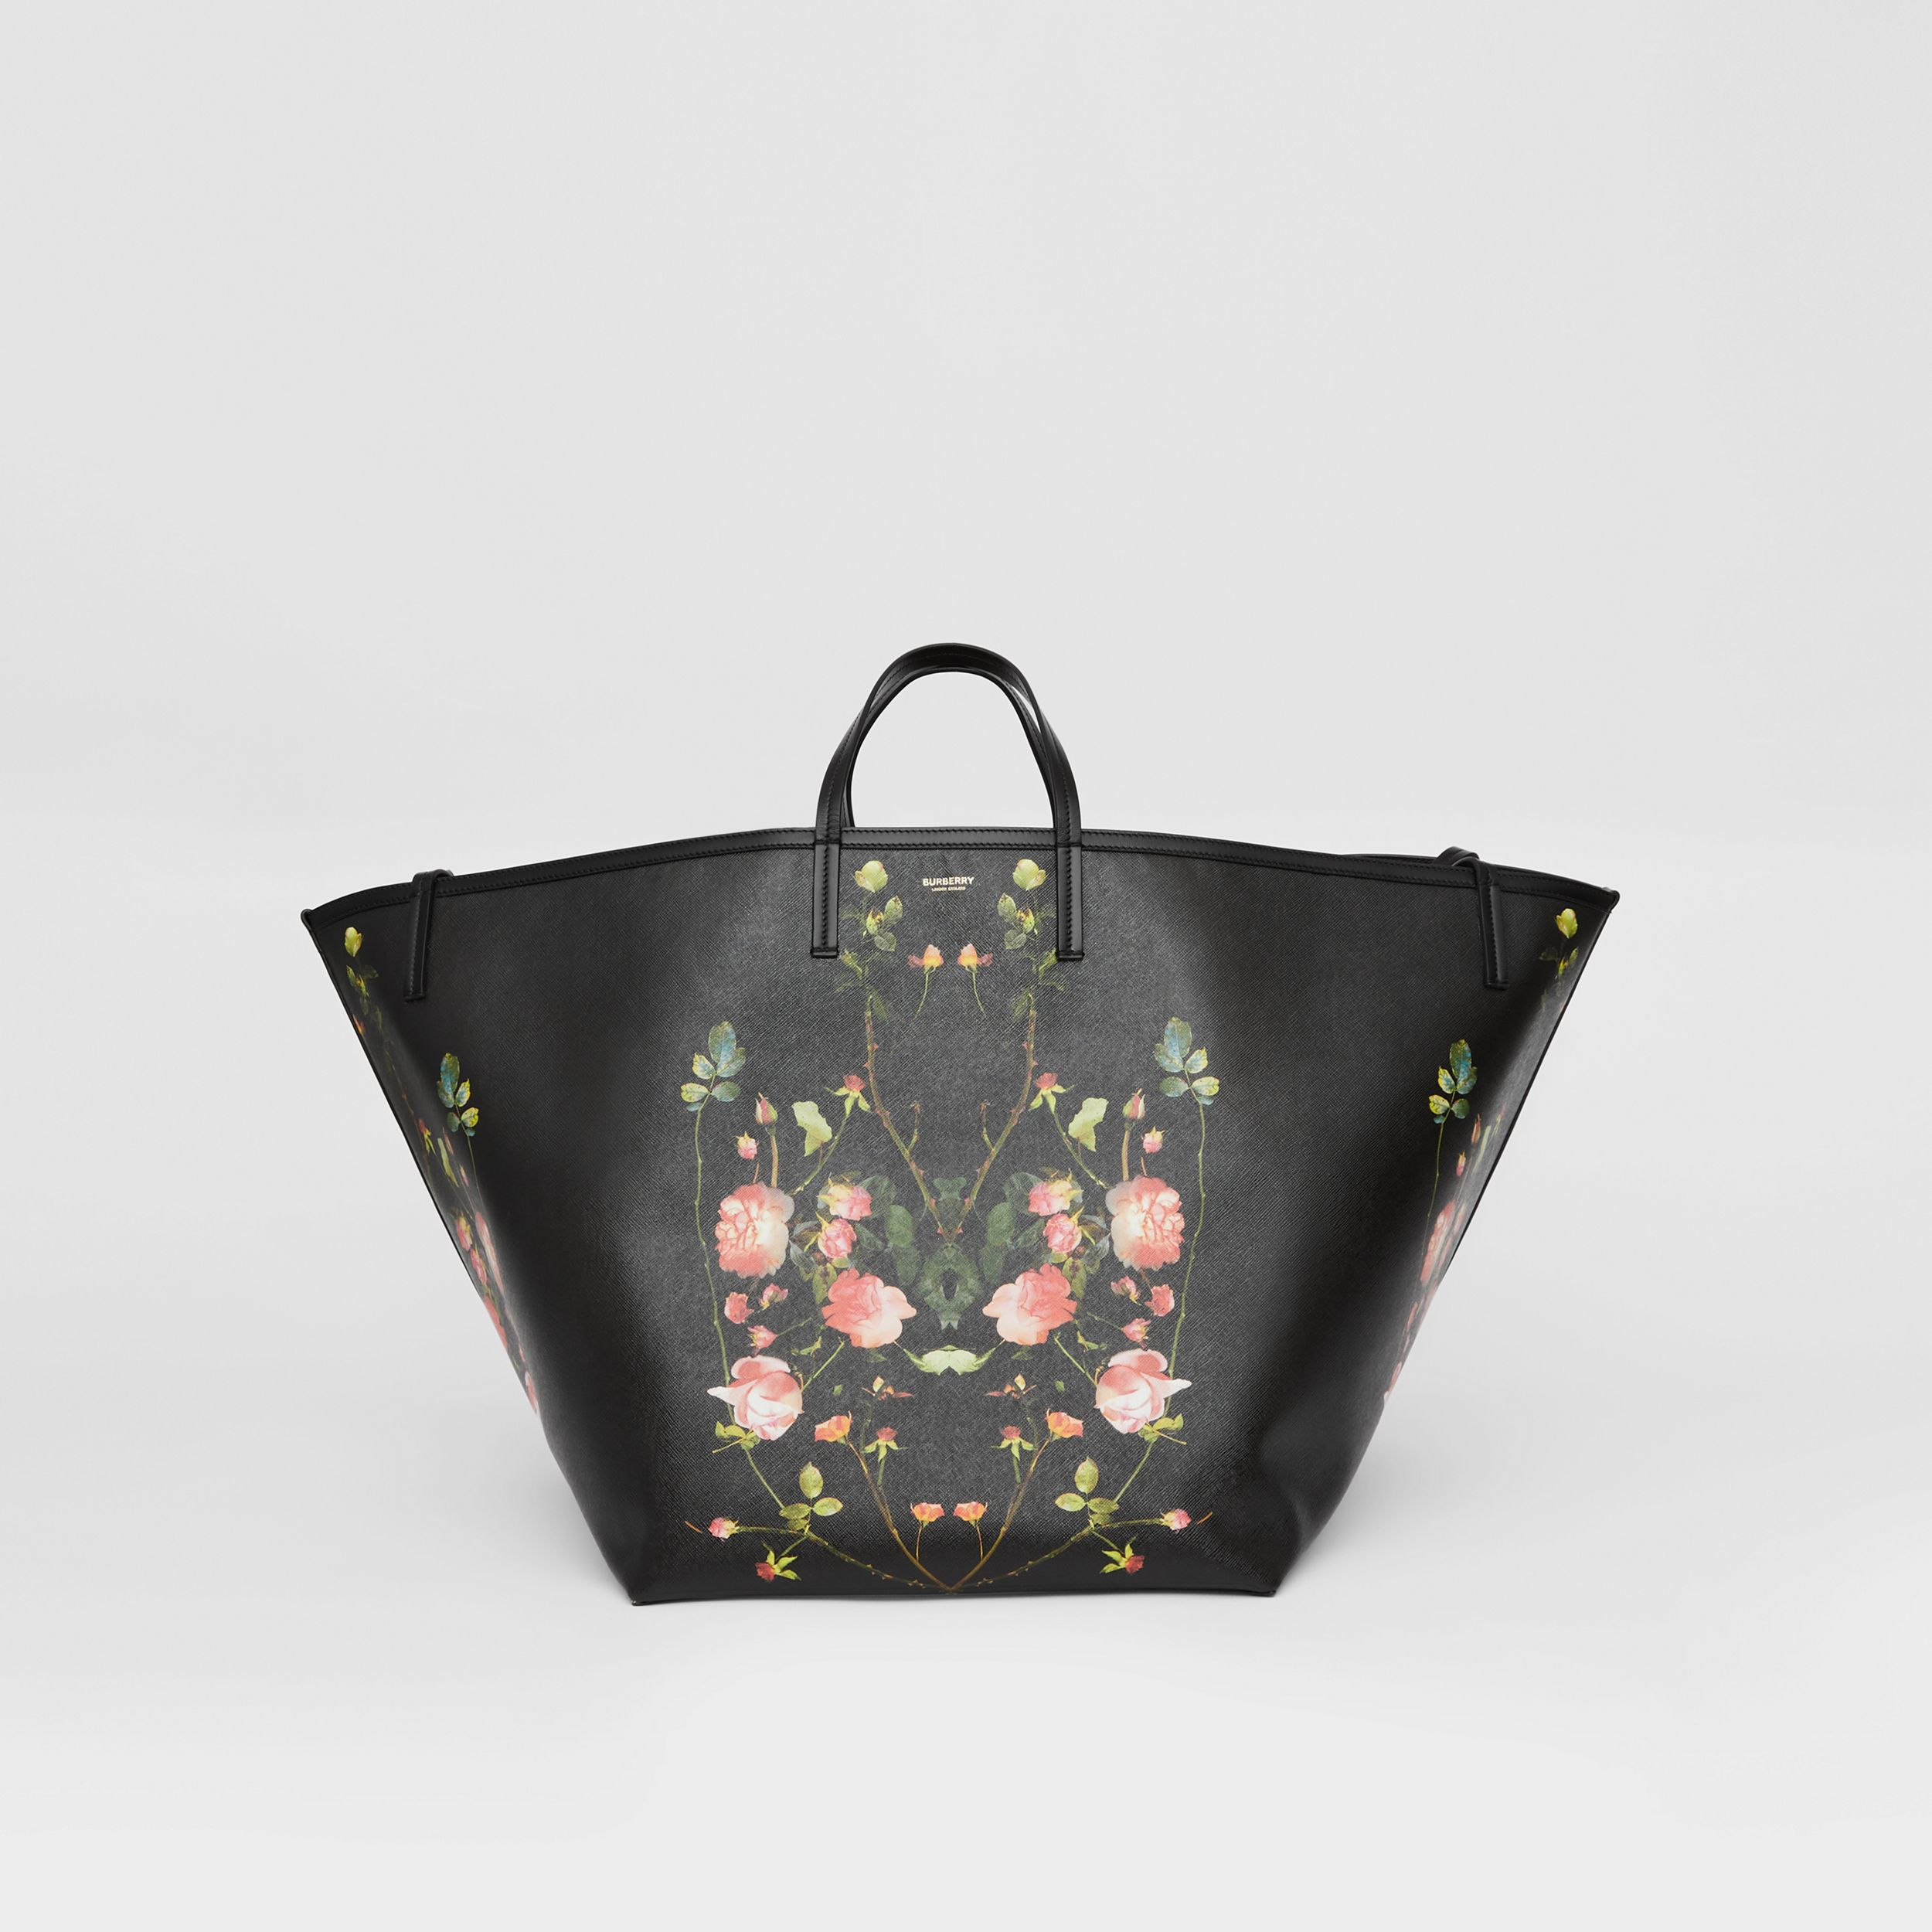 Extra Large Rose Print E-canvas Beach Tote in Black - Women | Burberry Hong Kong S.A.R. - 1